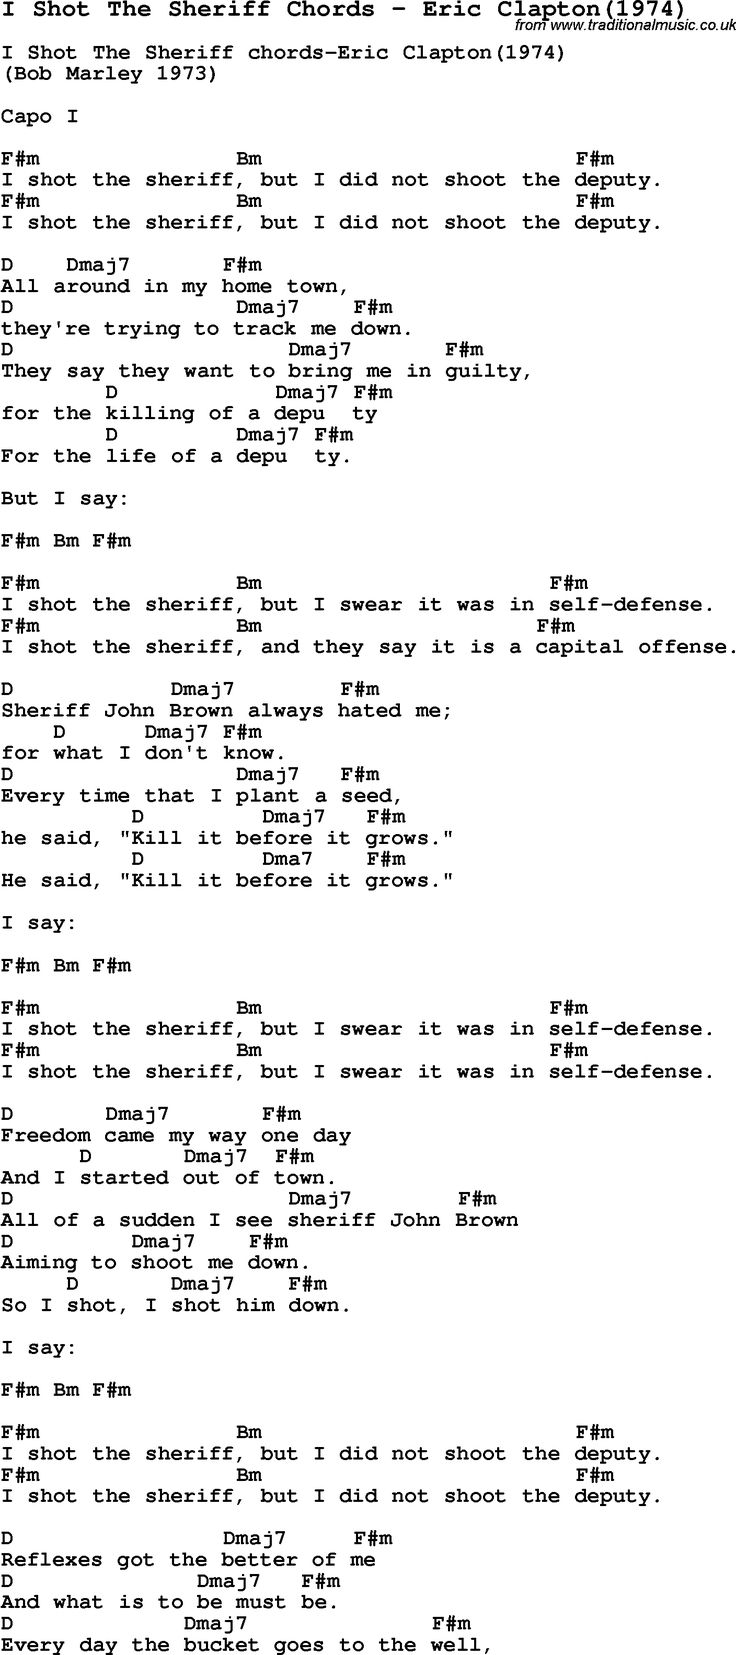 11 best guitar chord charts images on pinterest lyrics music song i shot the sheriff chords by eric clapton1974 with lyrics for hexwebz Gallery